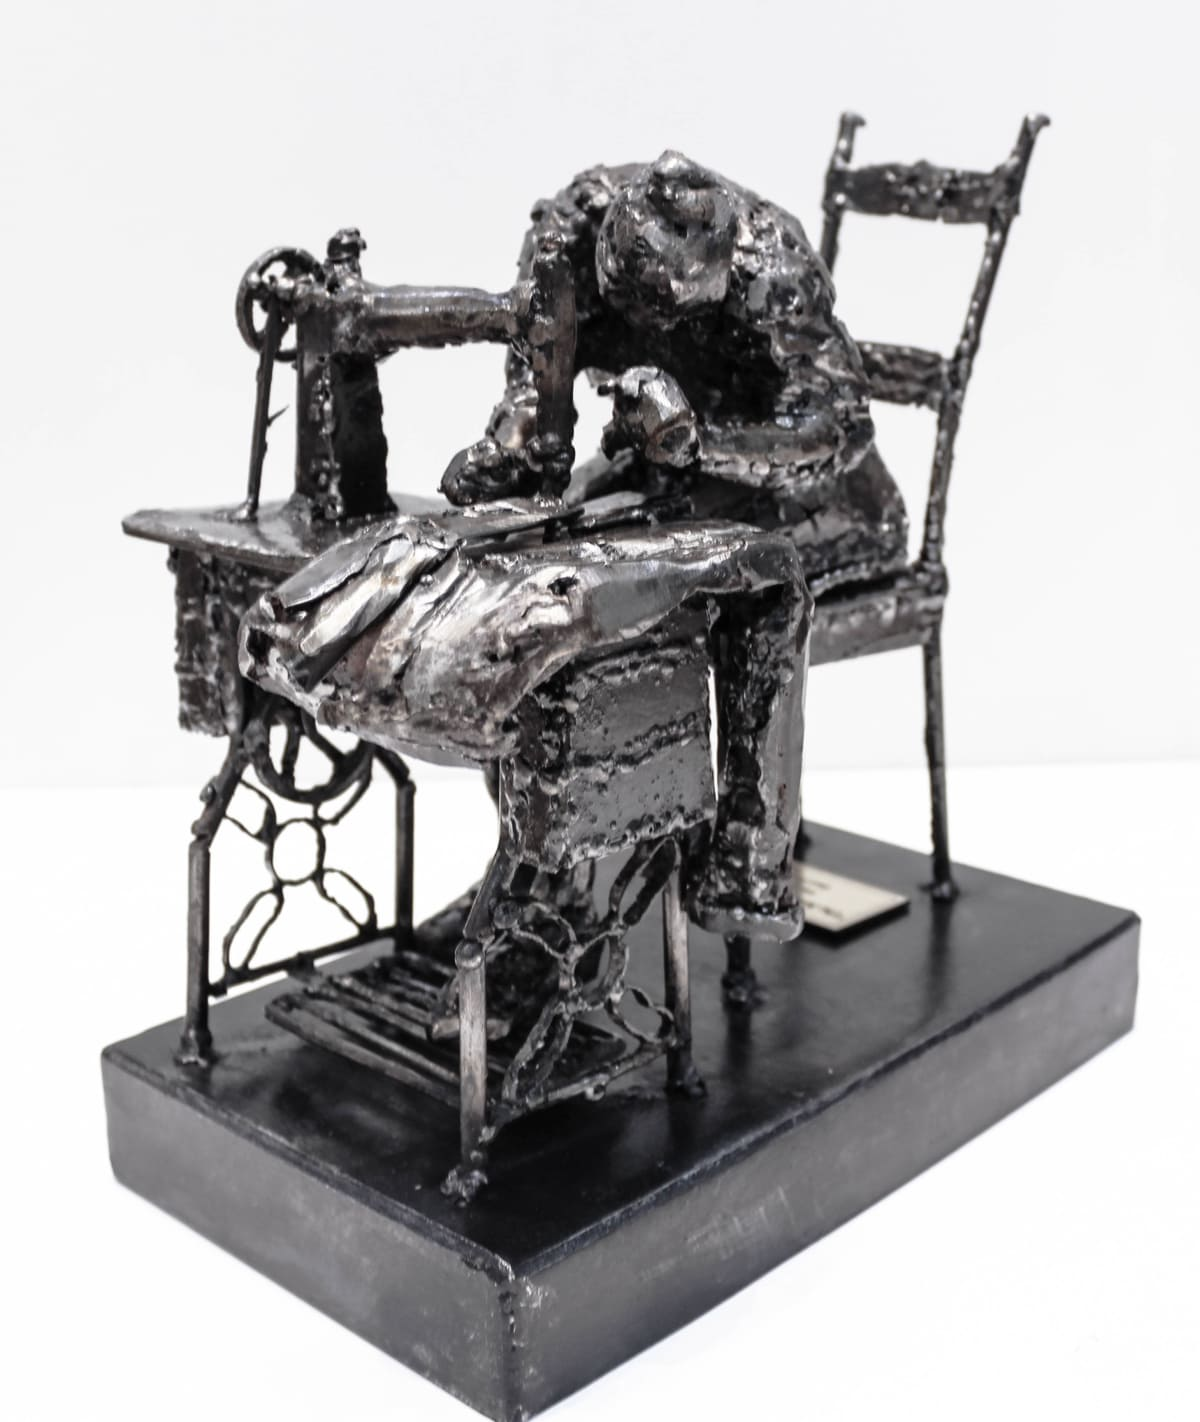 Gert Potgieter, The Sewing Machine, 2016